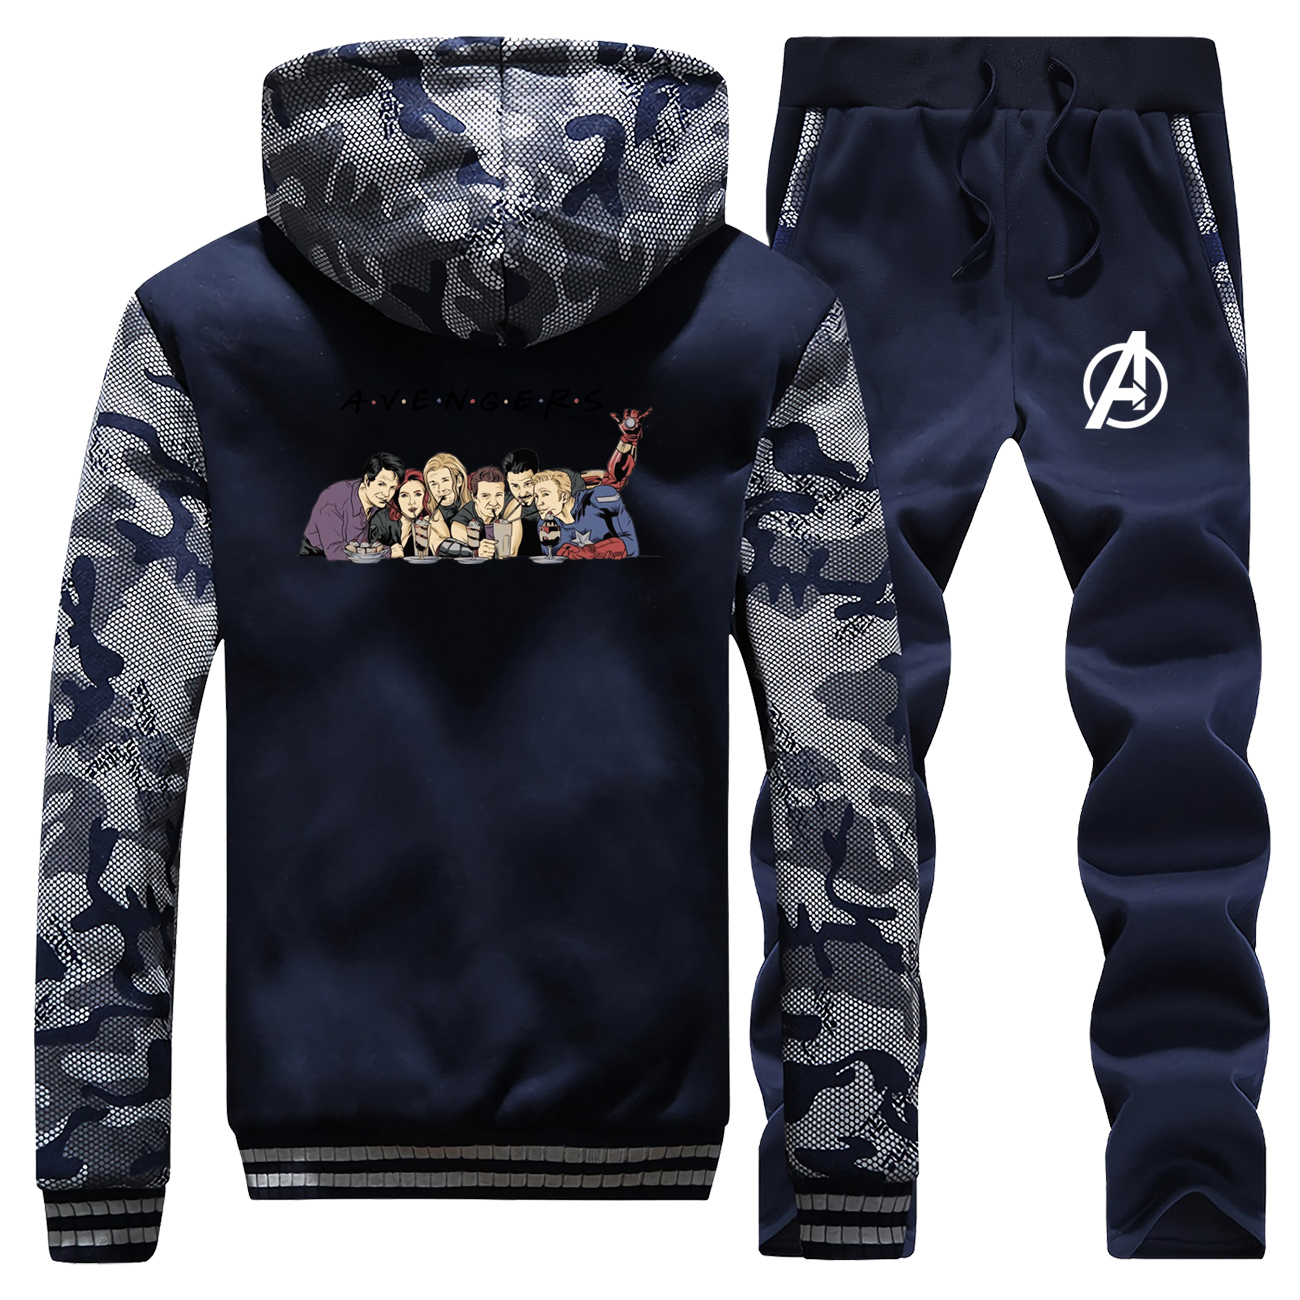 2019 Winter Coat Thick Mens Funny The Avengers Super Hero Sweatshirts Camouflage Warm Jackets Suit Hoodies+Pants 2 Piece Set